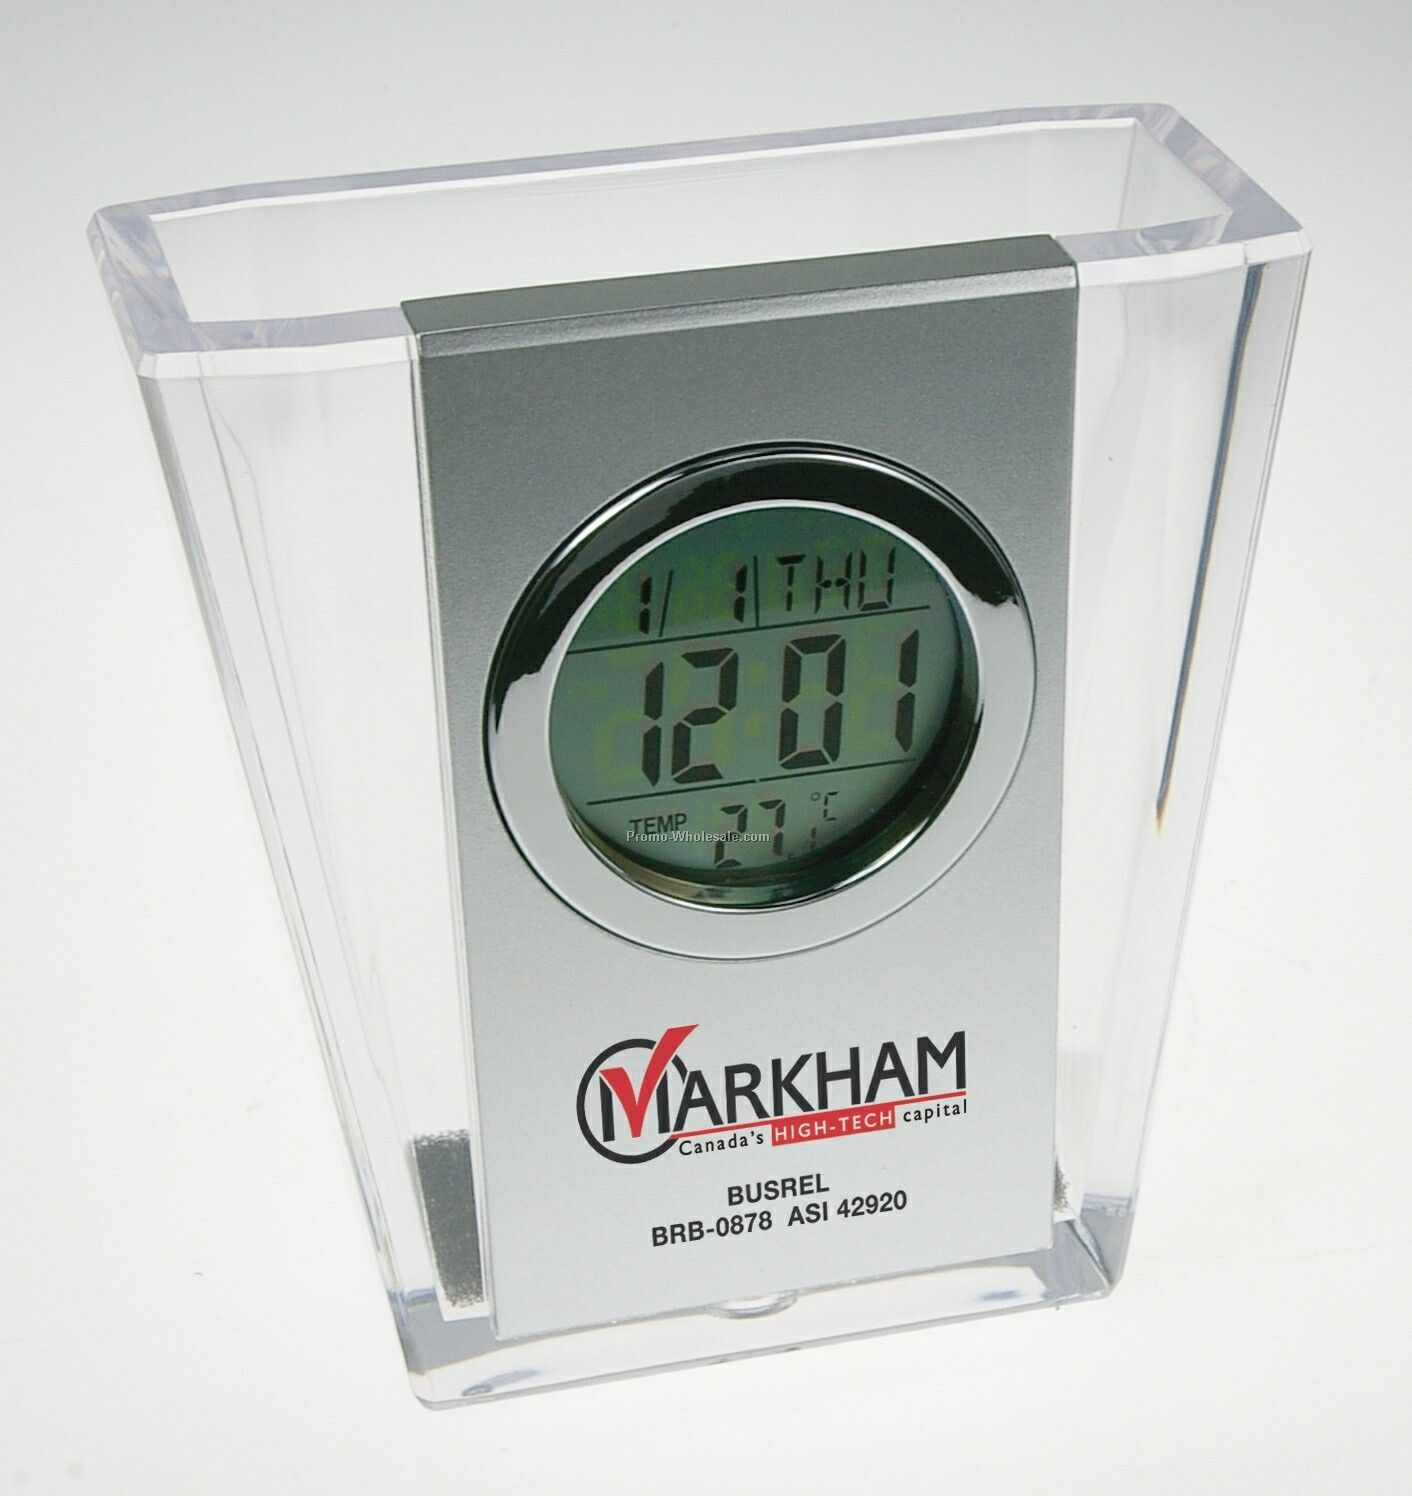 Transparent Acrylic Pen Holder W/ Clock, Calendar & Thermometer